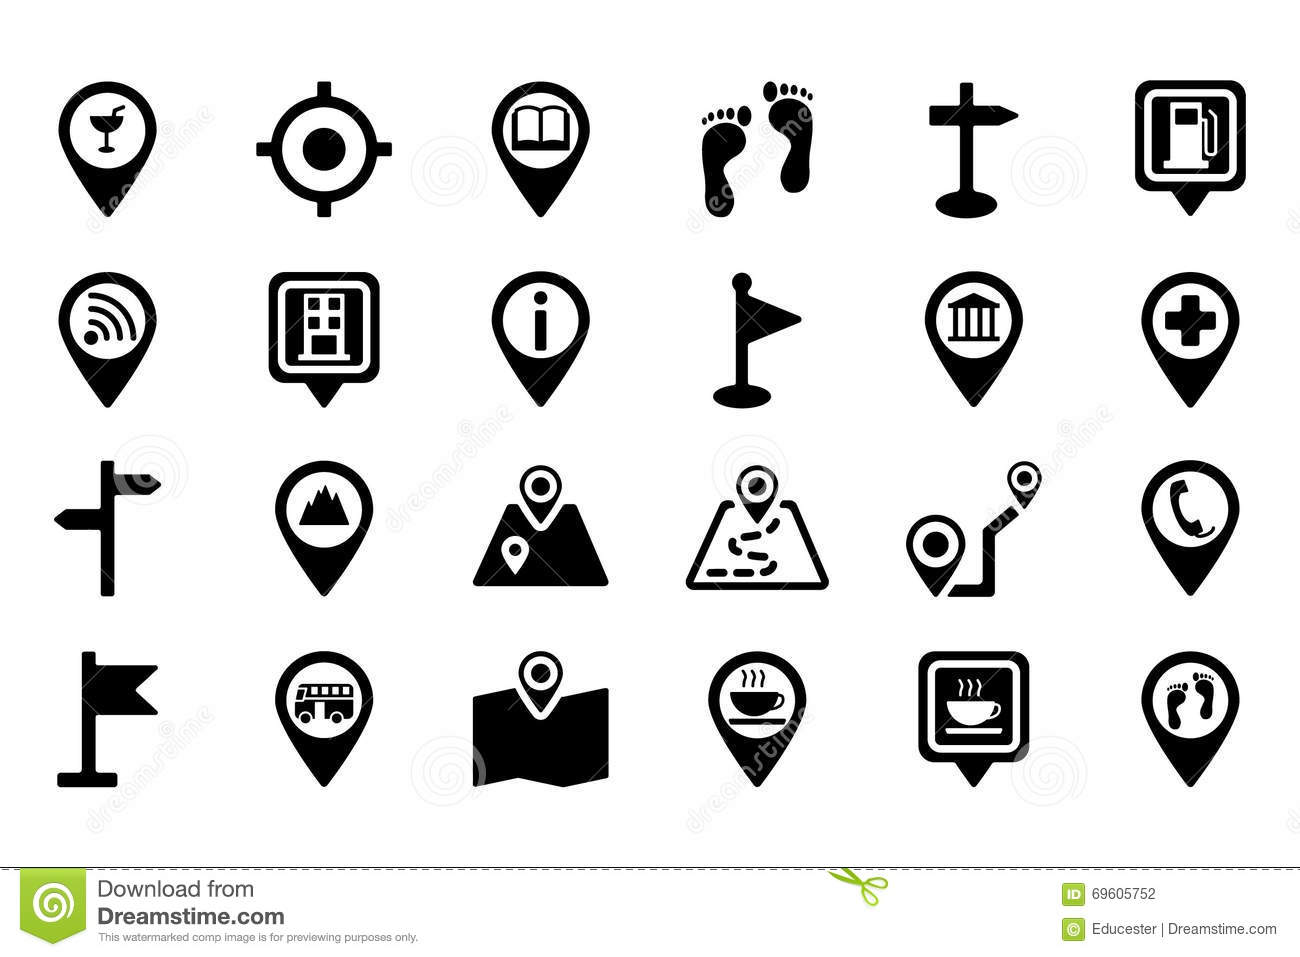 Maps And Navigation Vector Icons 2 Stock Illustration